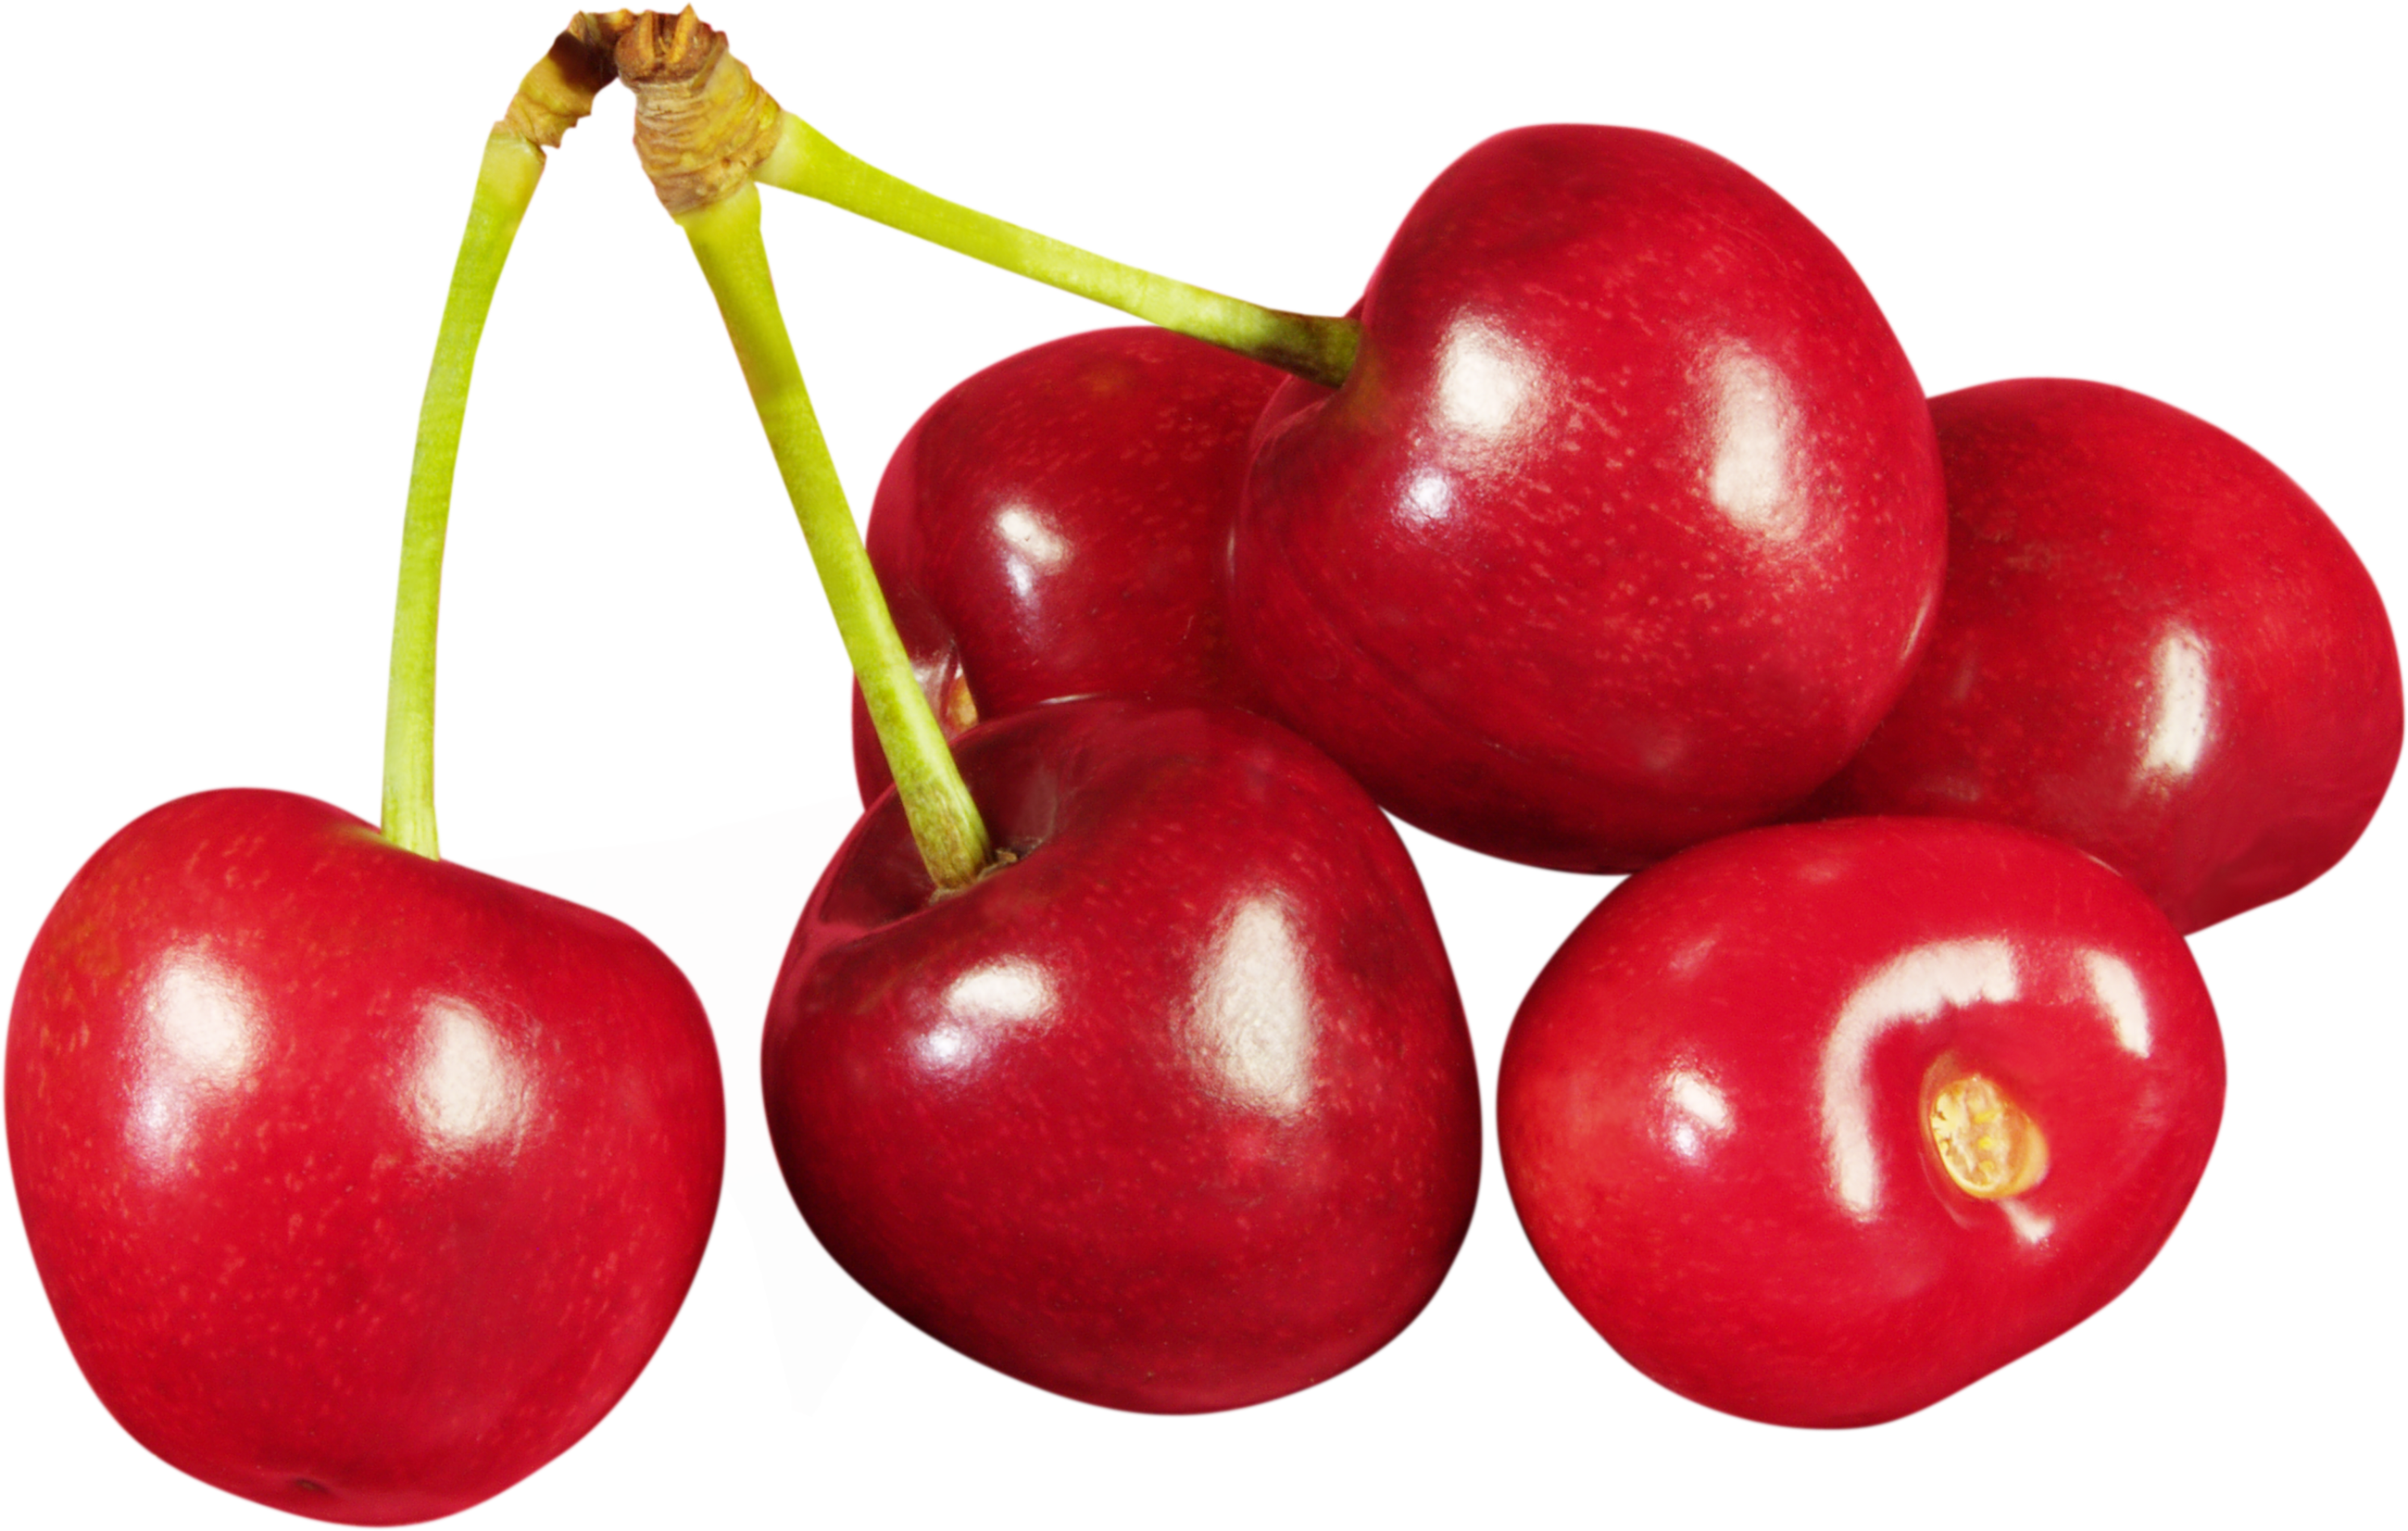 Cherry clipart cherry outline. Png images free download